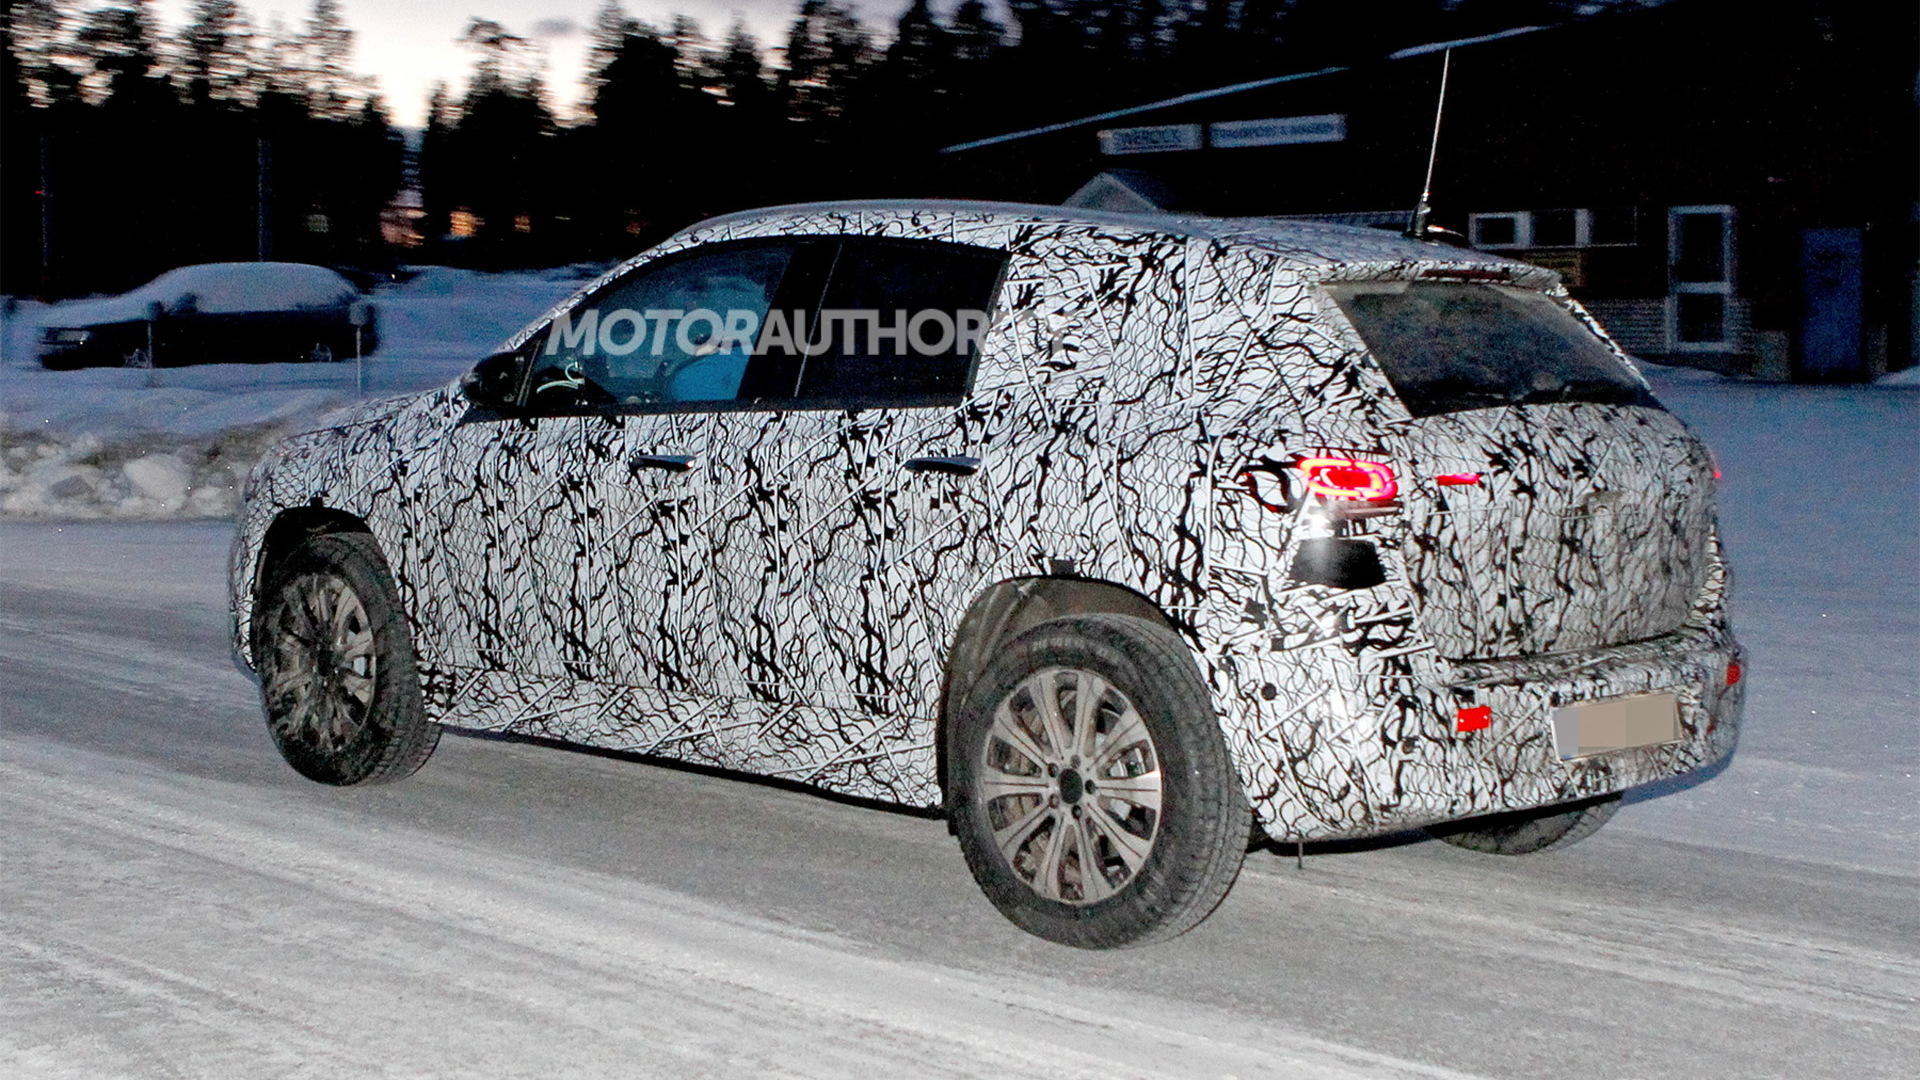 2021 Mercedes-Benz EQA spy shots - Photo credit: S. Baldauf/SB-Medien